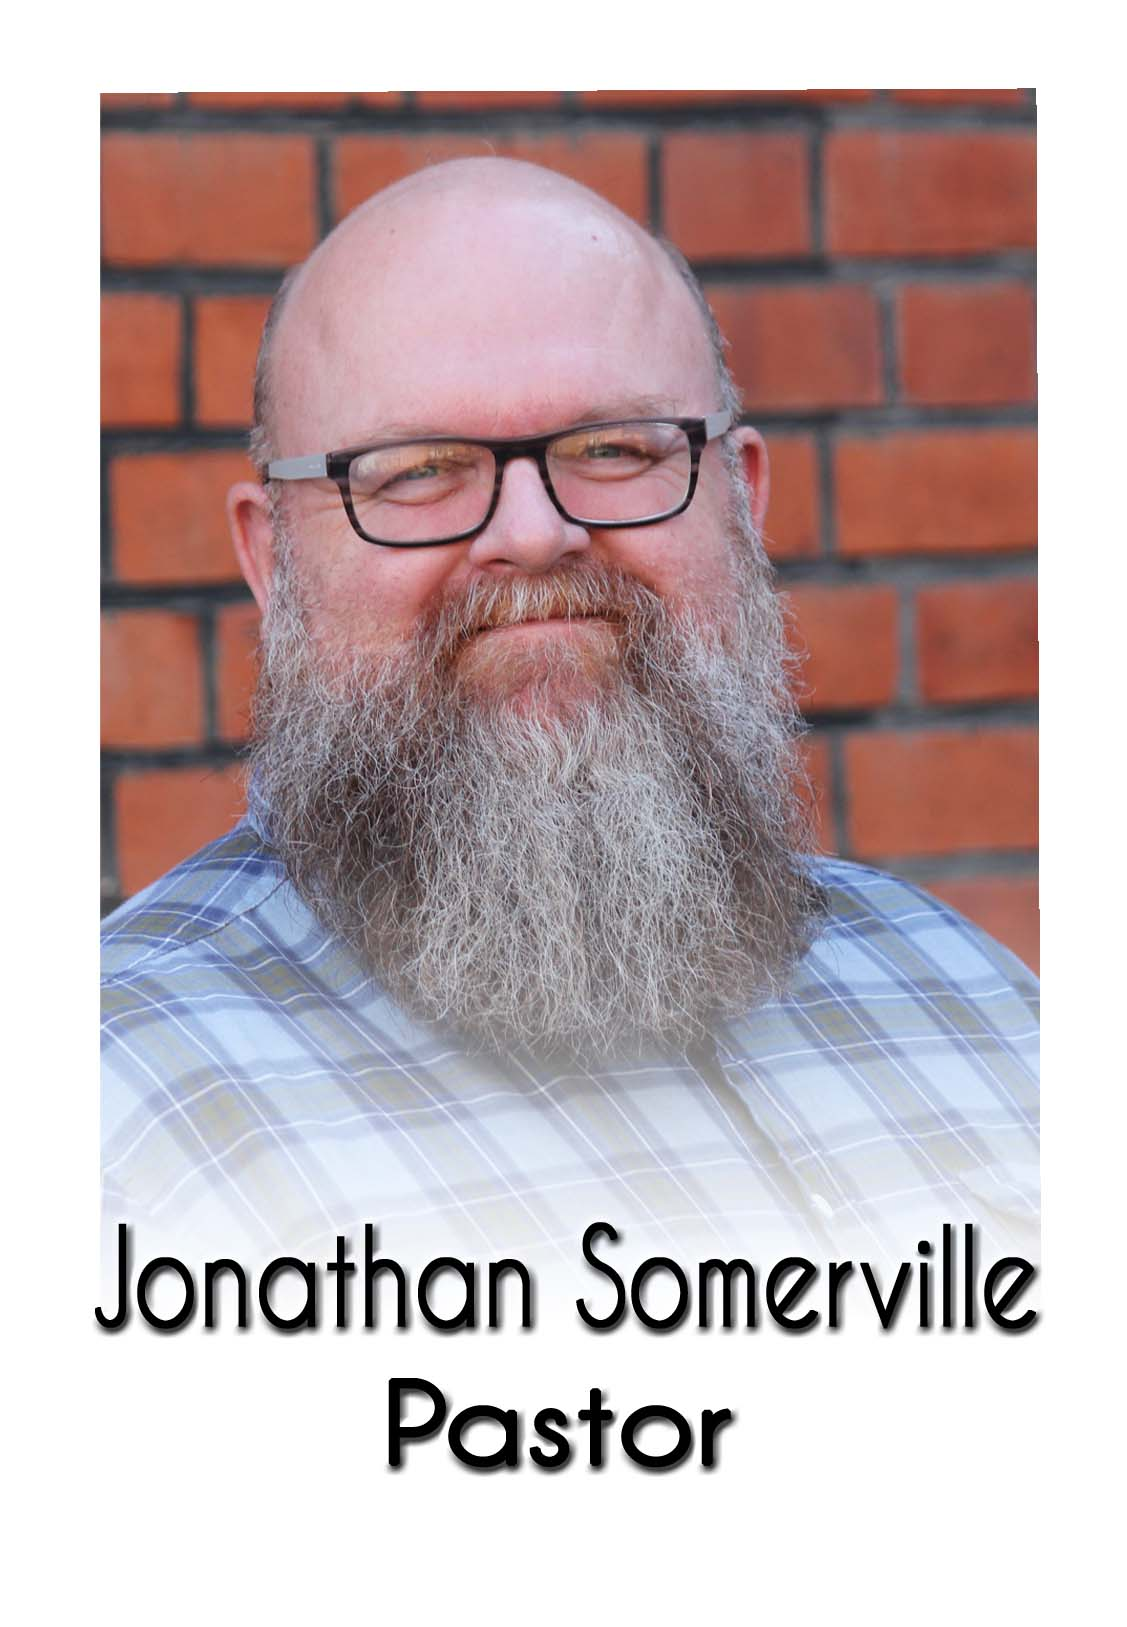 Jonathan Somerville labelled